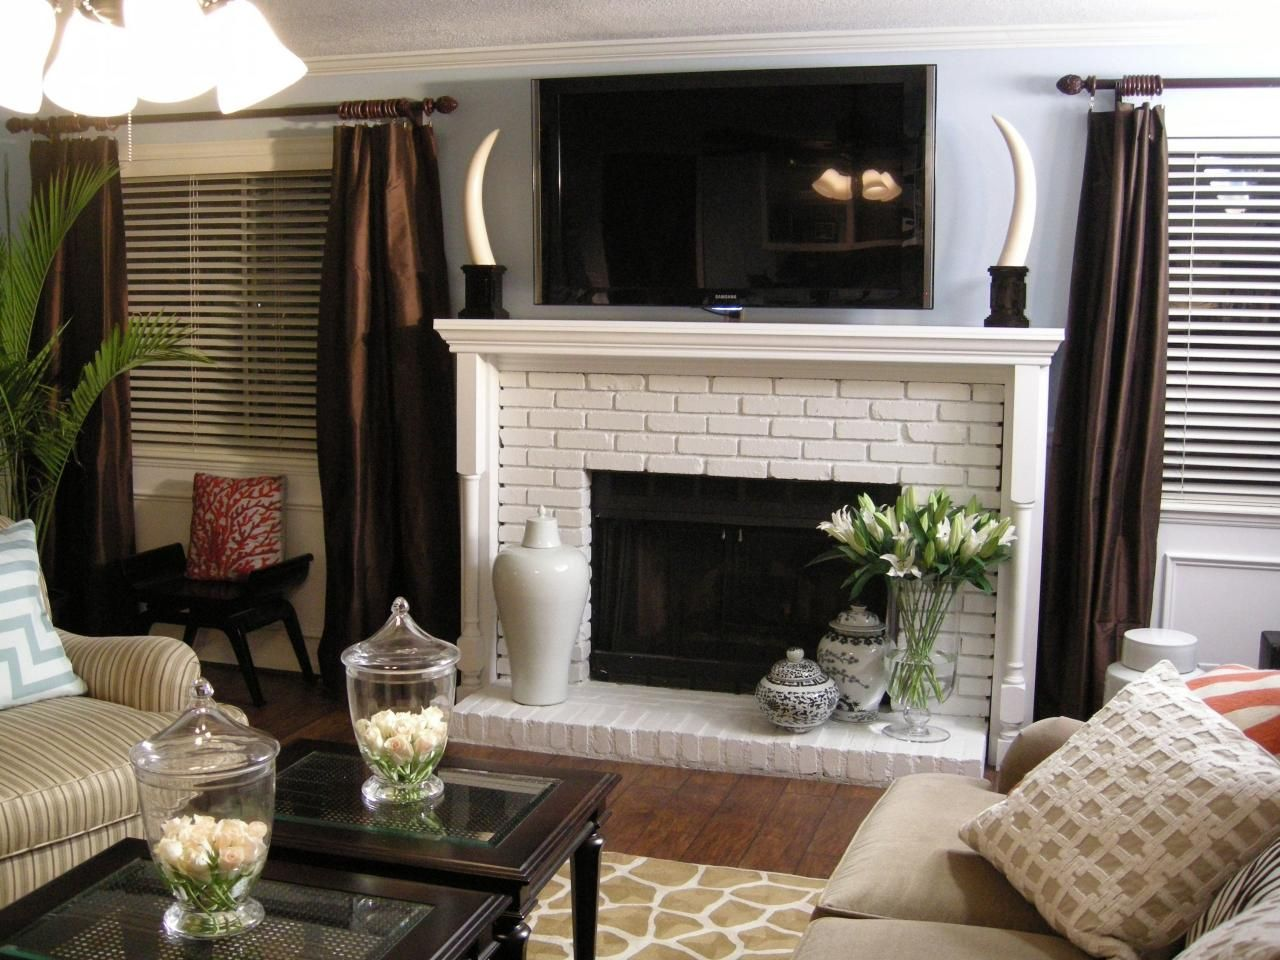 How to build a new fireplace surround and mantel staircases how to build a new fireplace surround and mantel solutioingenieria Choice Image